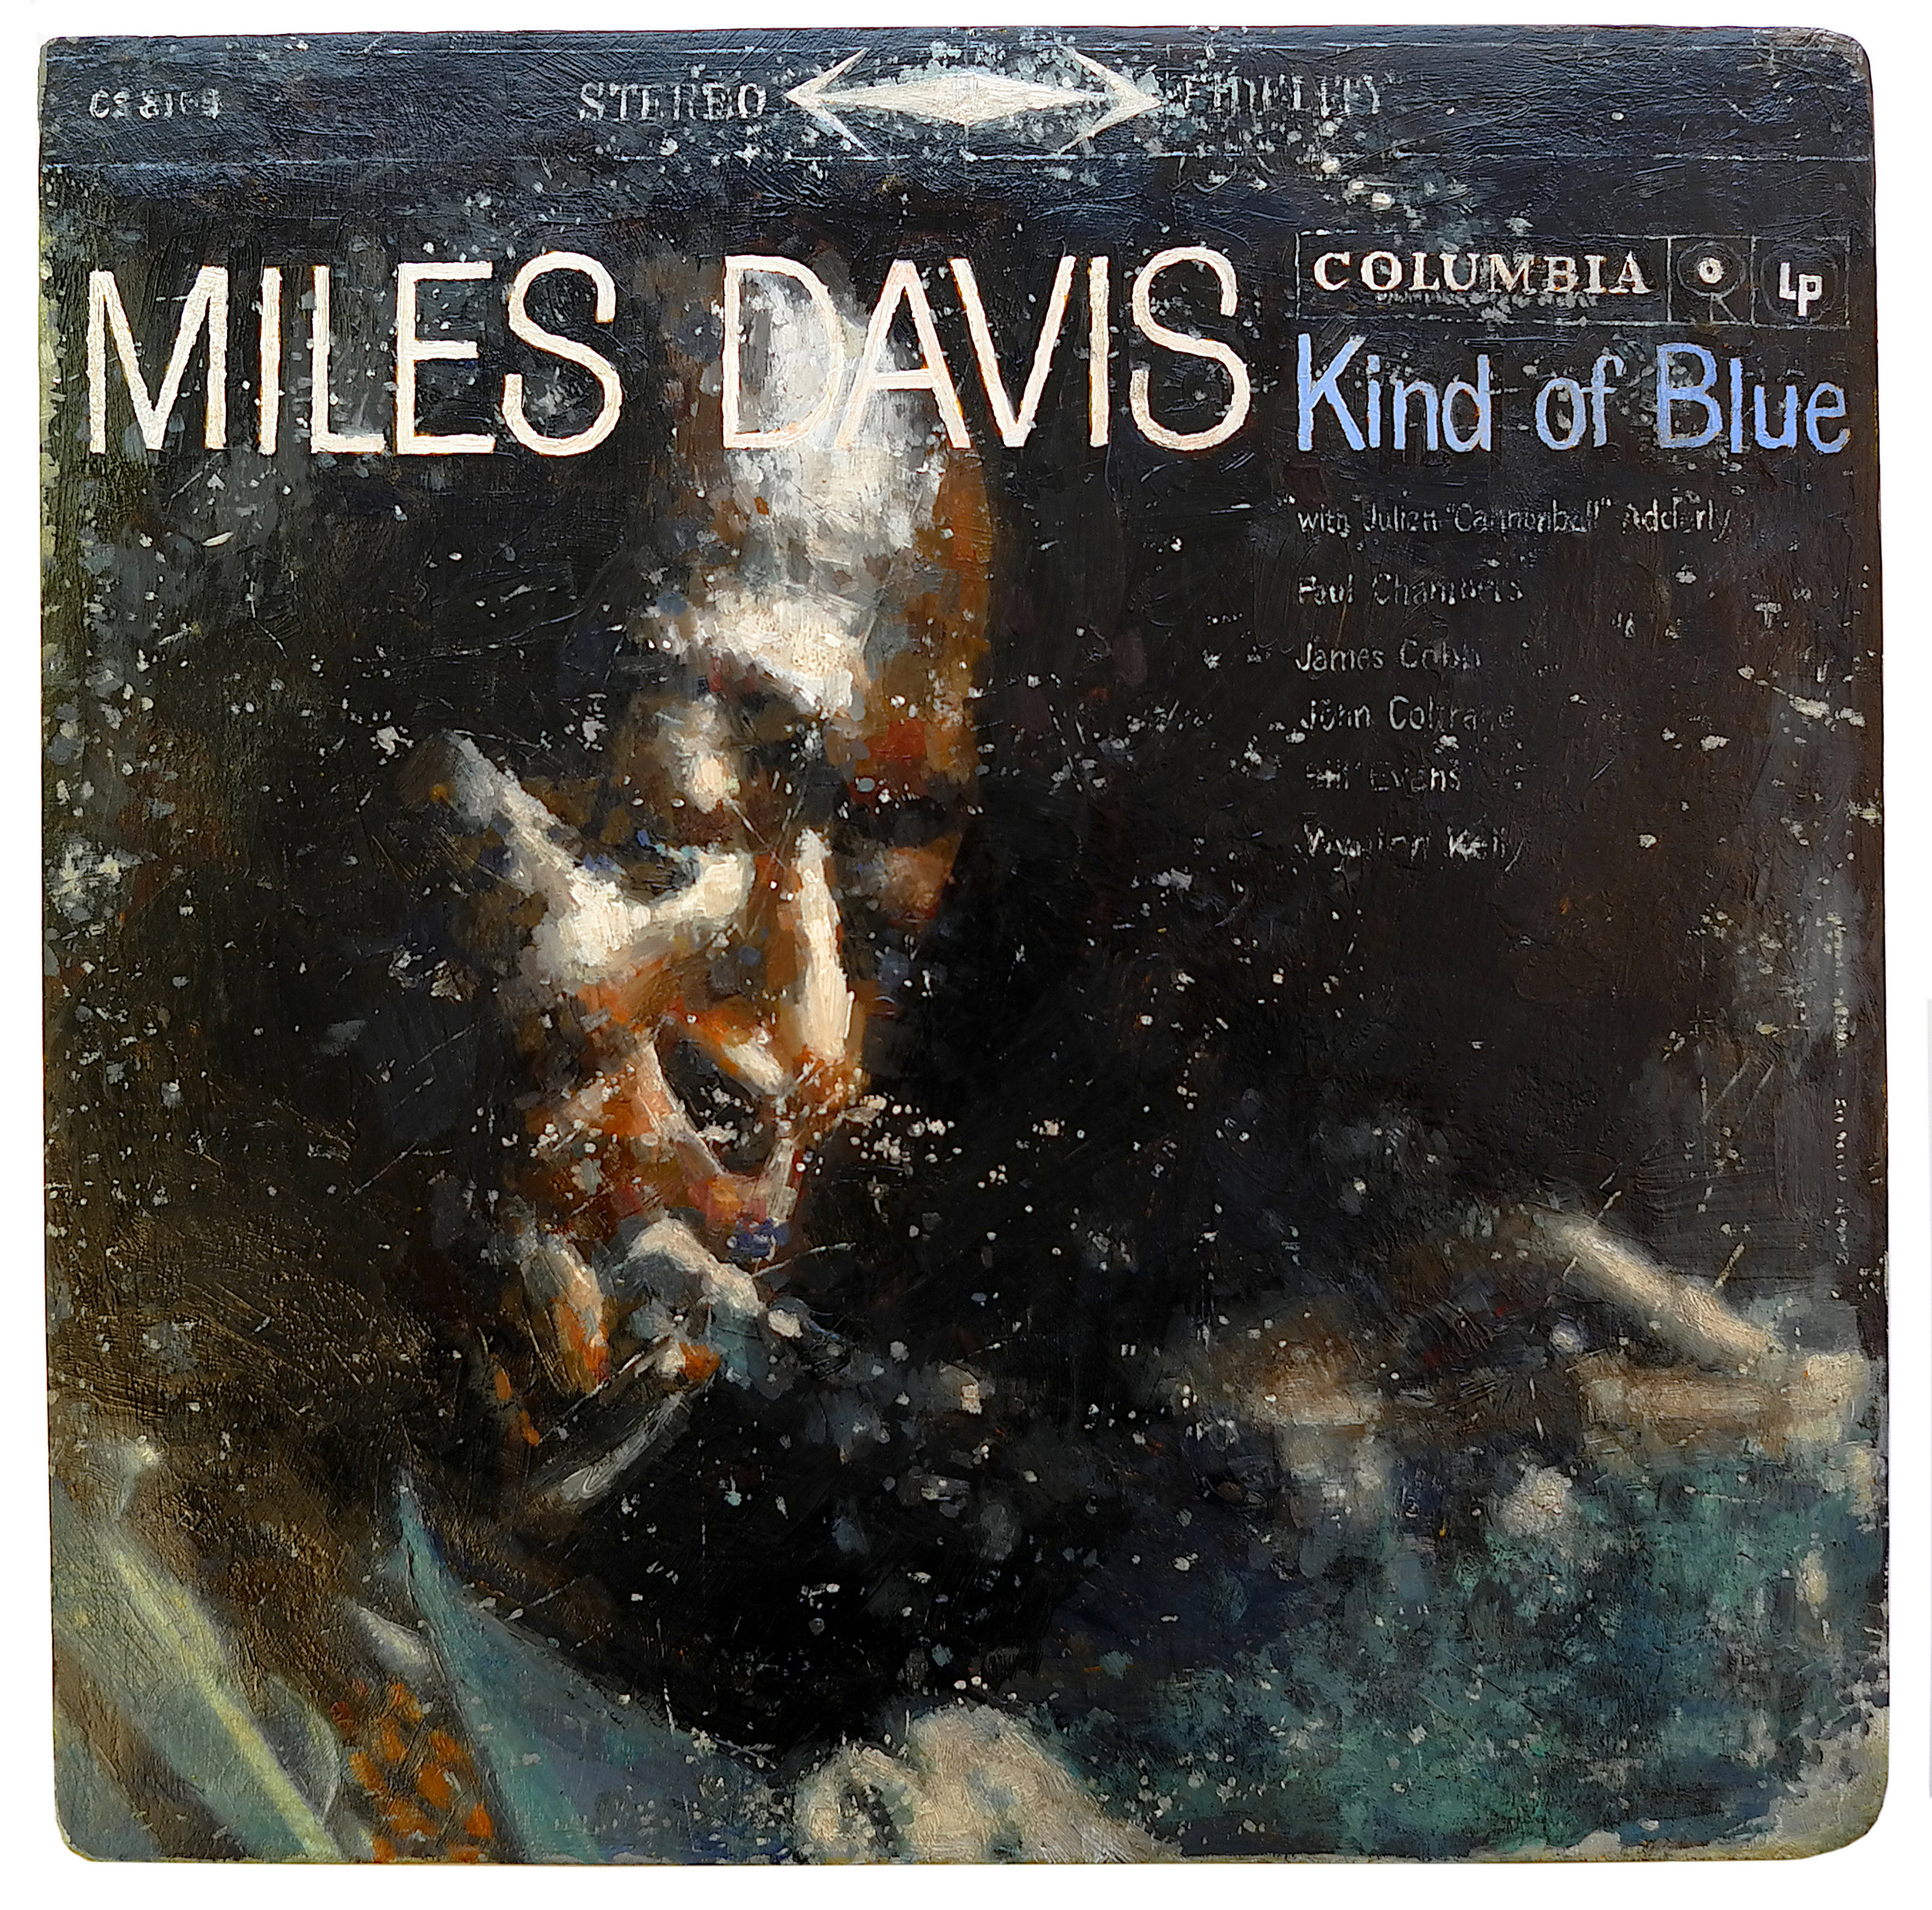 Untitled Project: Any Thing You Want[BG / My Mother's Original/Vintage Copy of Miles Davis' Kind of Blue]   Oil paint on carved wood, 1:1 scale 2014